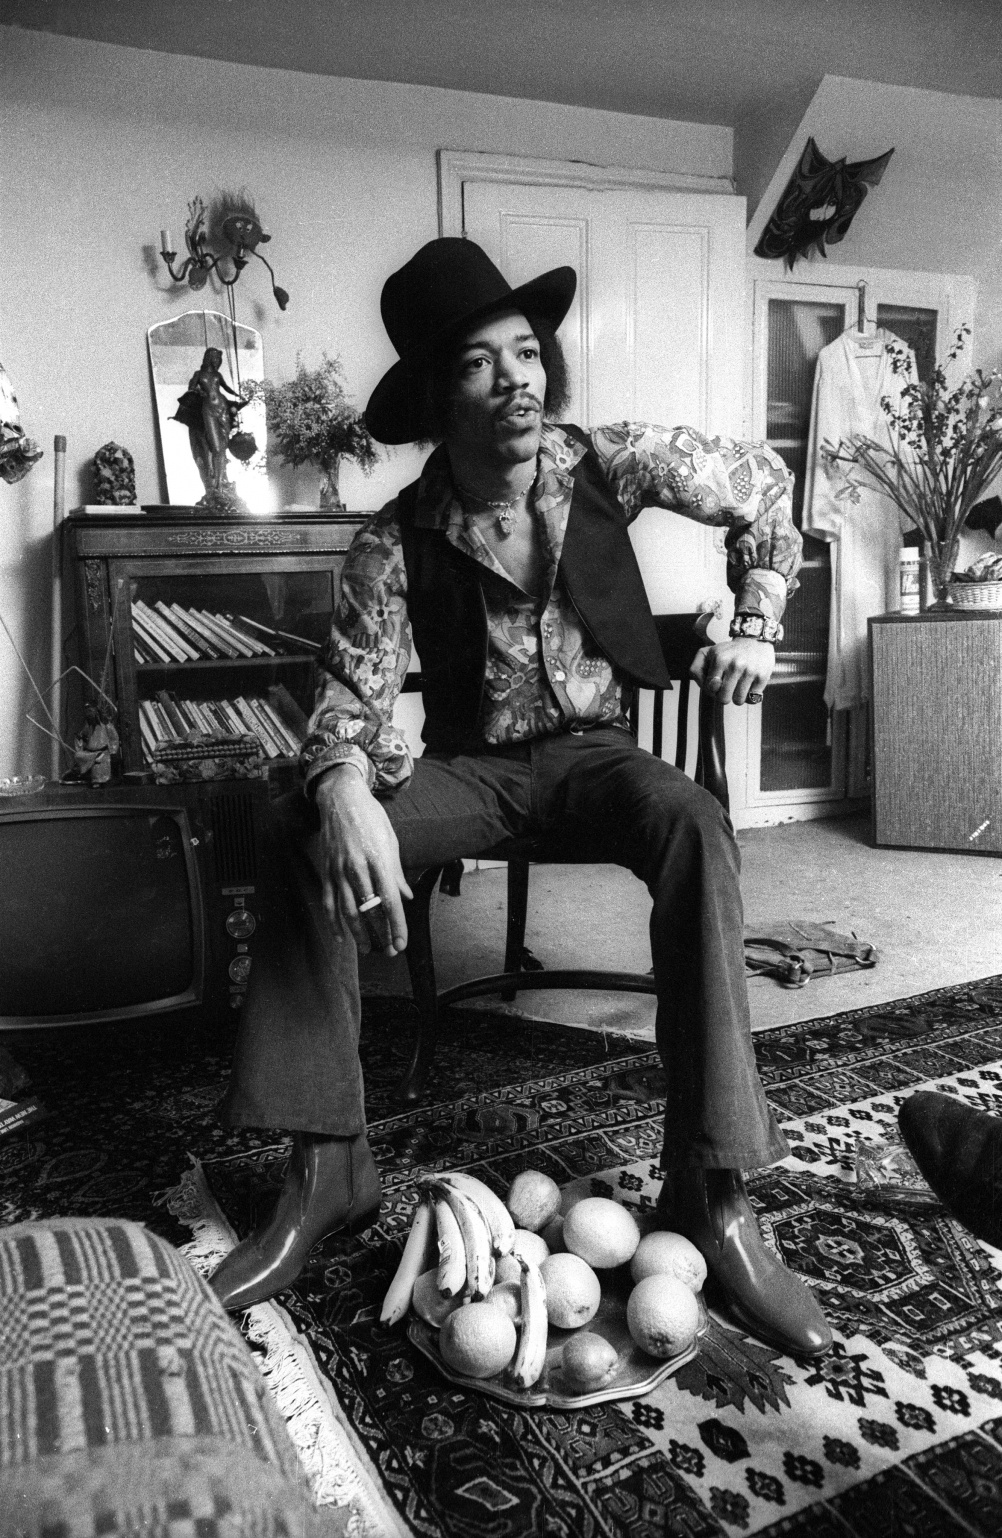 384A_8. Jimi Hendrix at 23 Brook Street, 1969. Credit (c)Barrie Wentzell